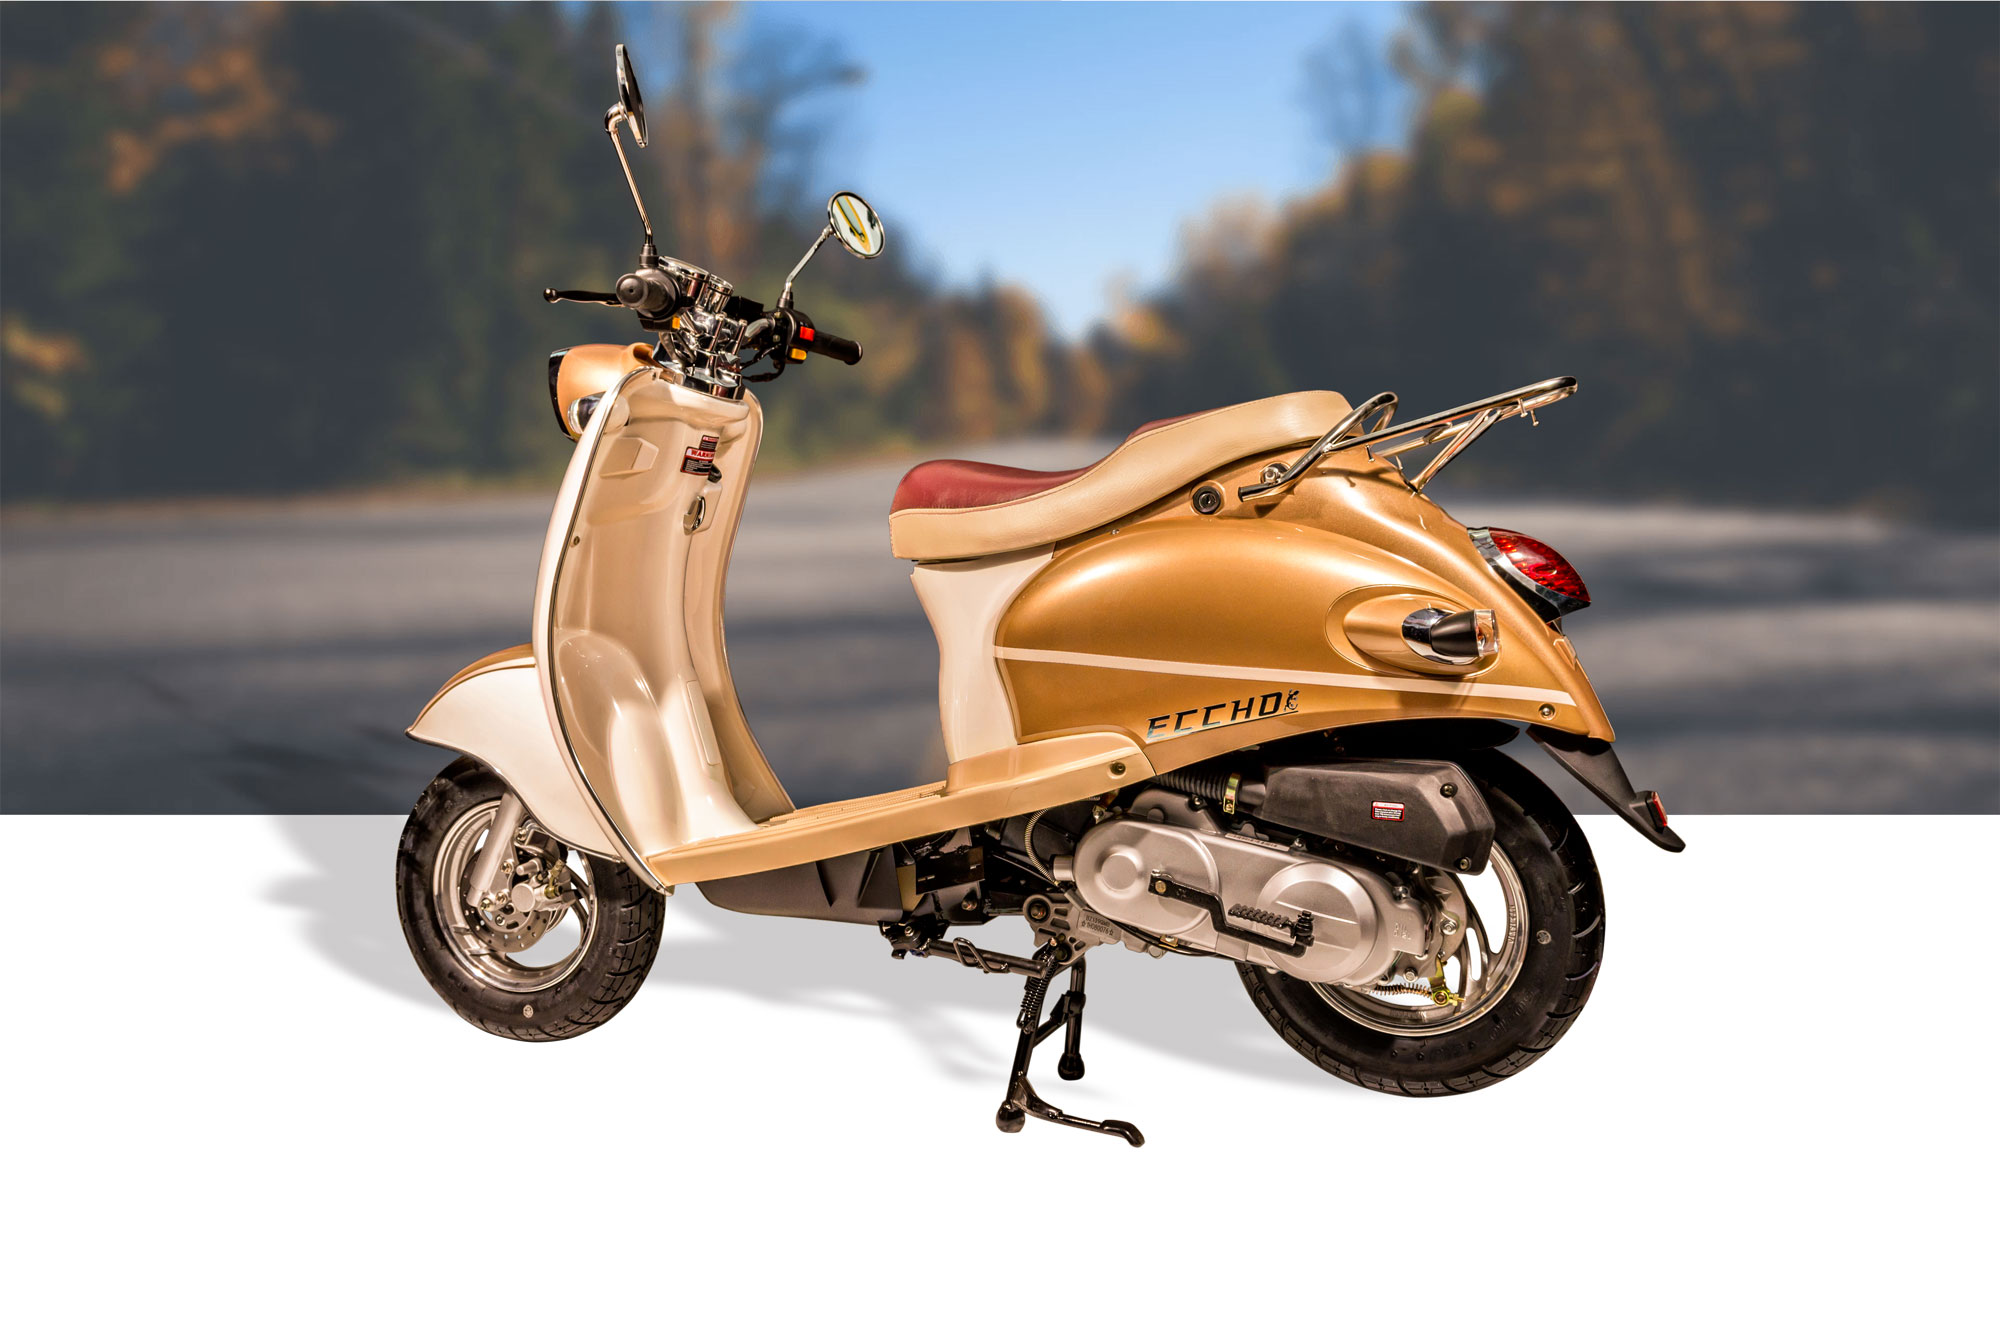 SCOOTER-50-ECCHO-RETRO-50-GOLD-II-07